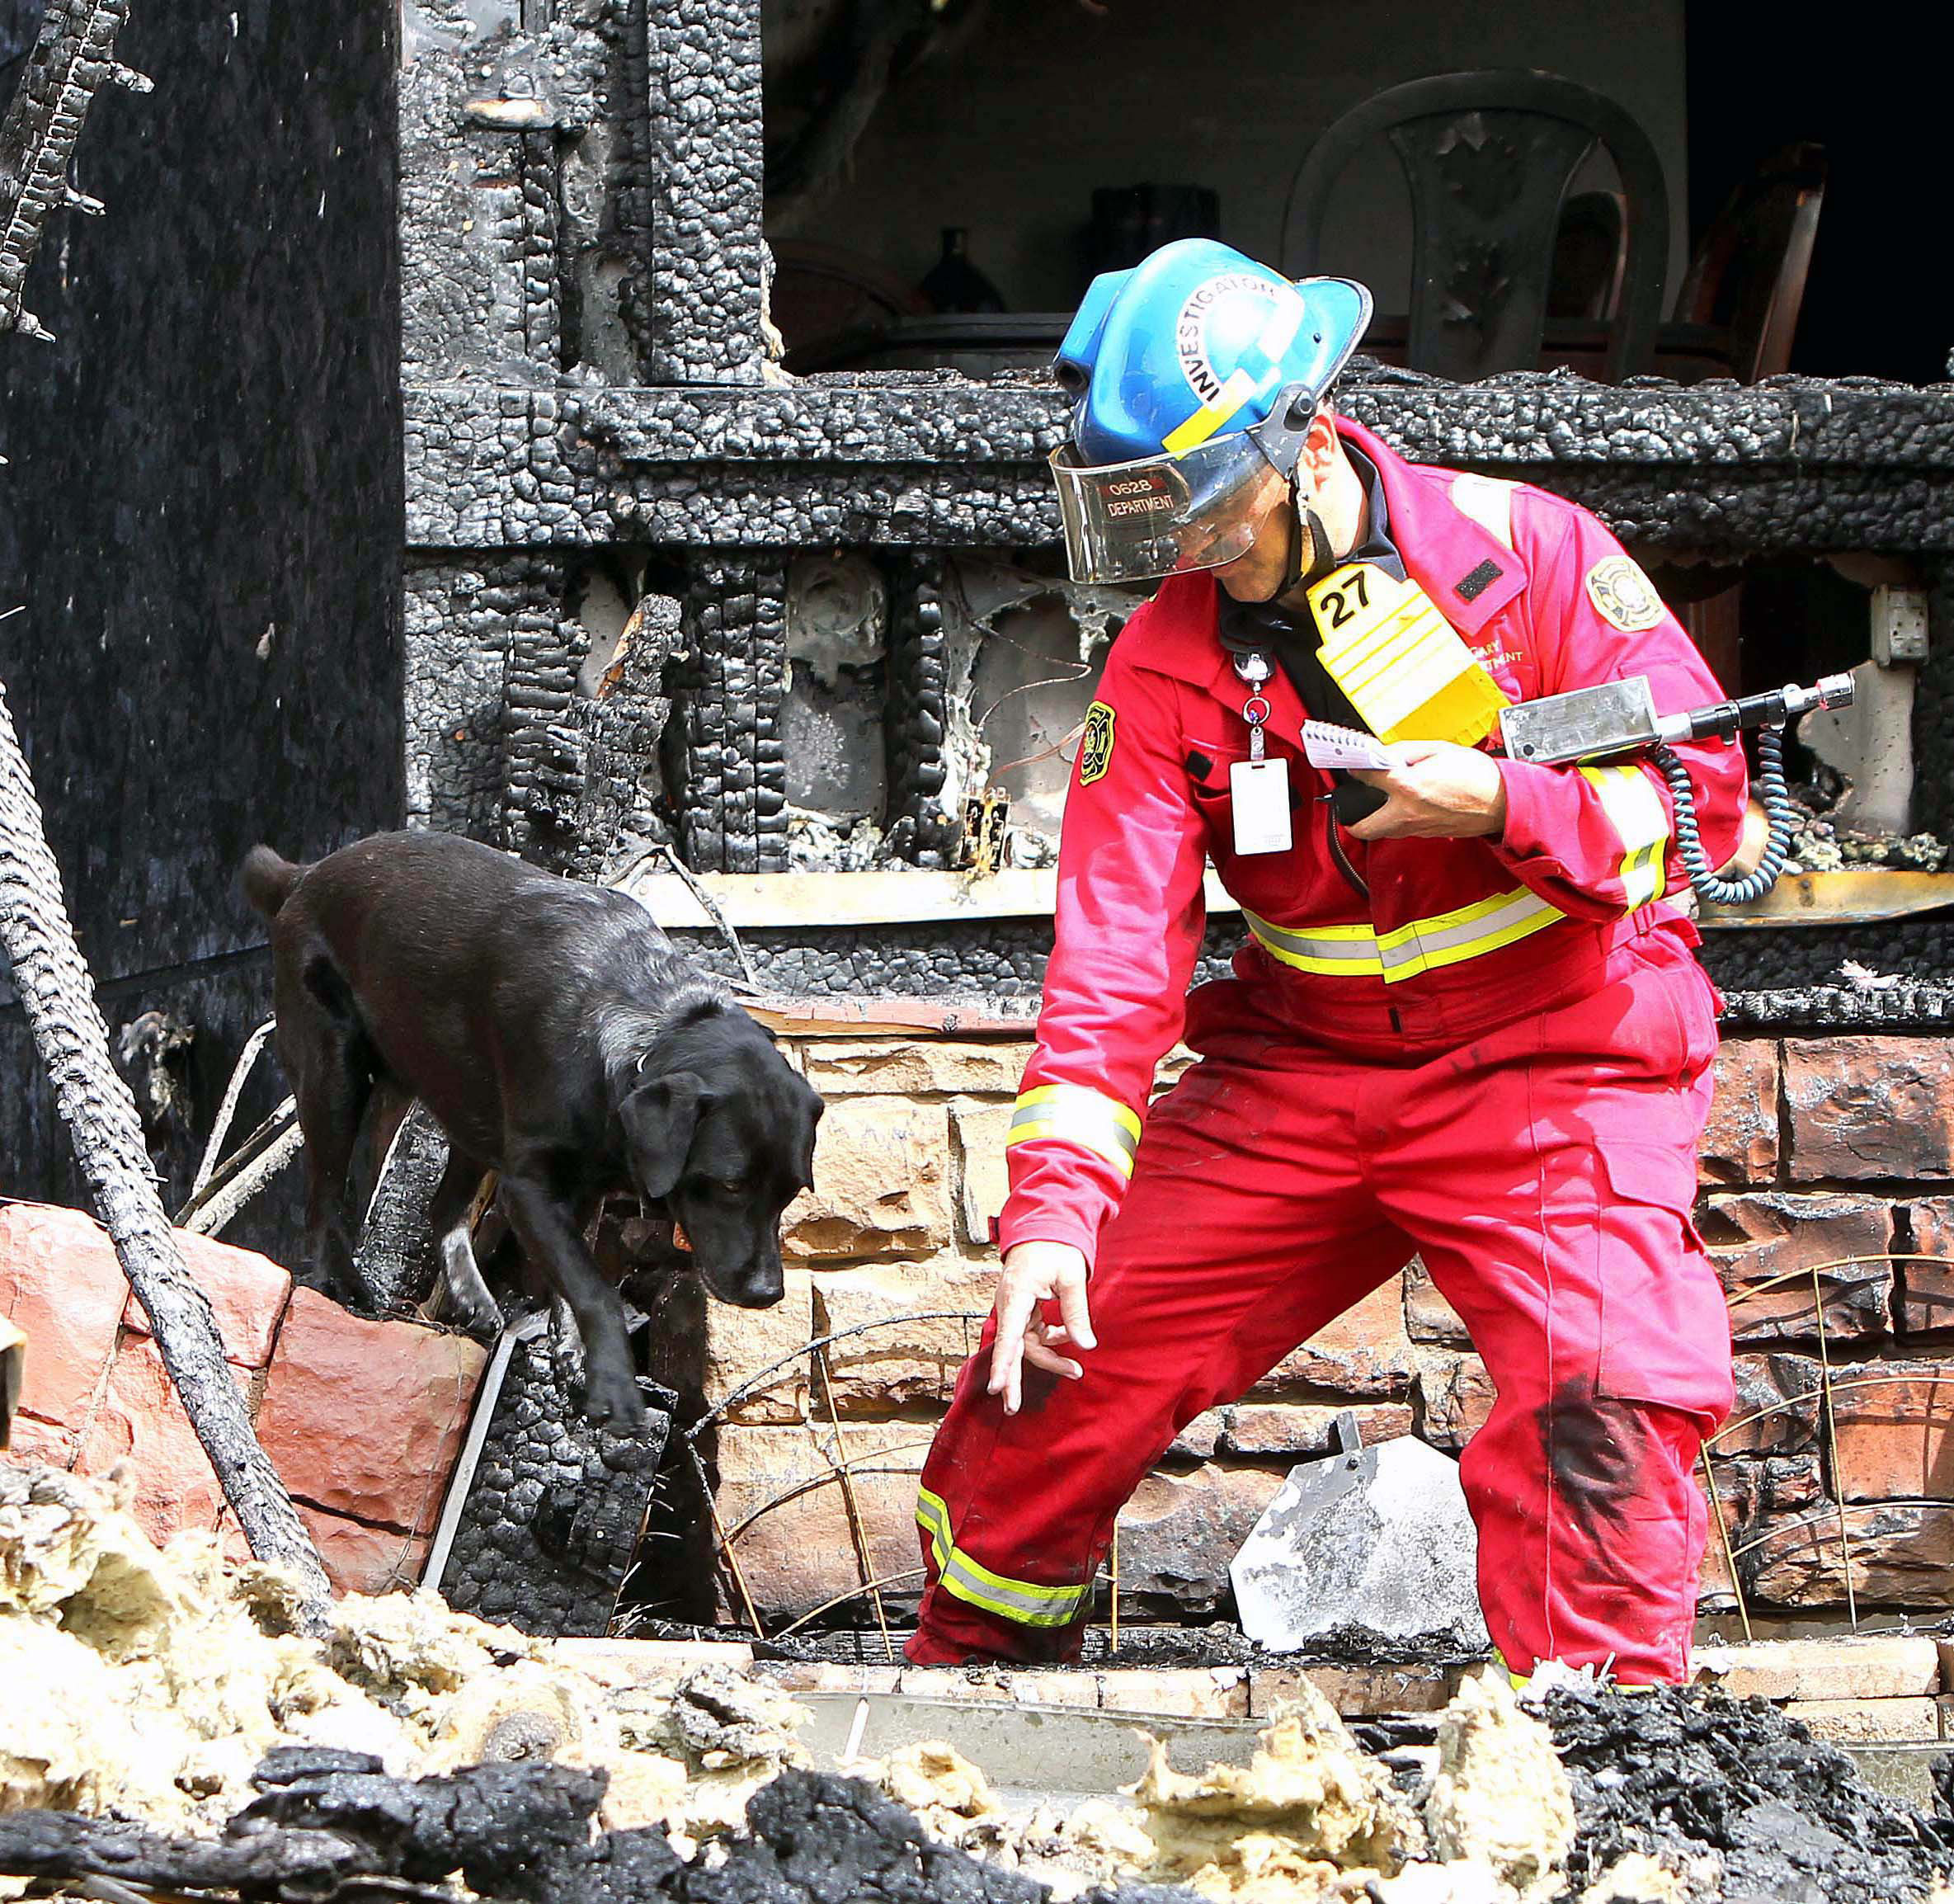 Fire investigator and K9 partner